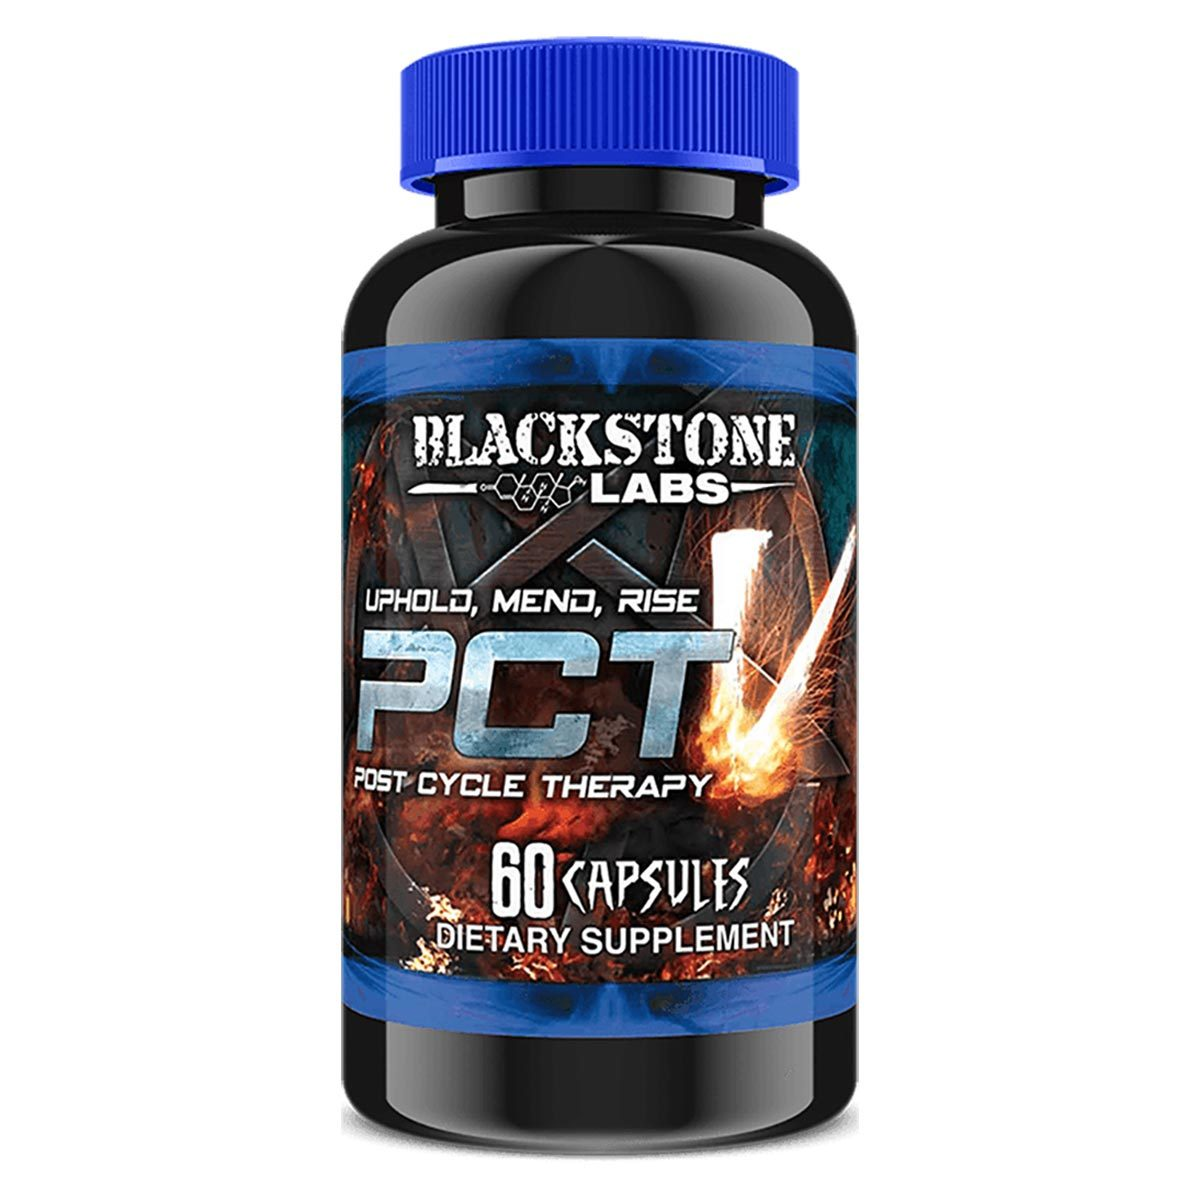 Androsta 3 5 Diene 7 17 Dione Side Effects blackstone labs pct v 60 caps